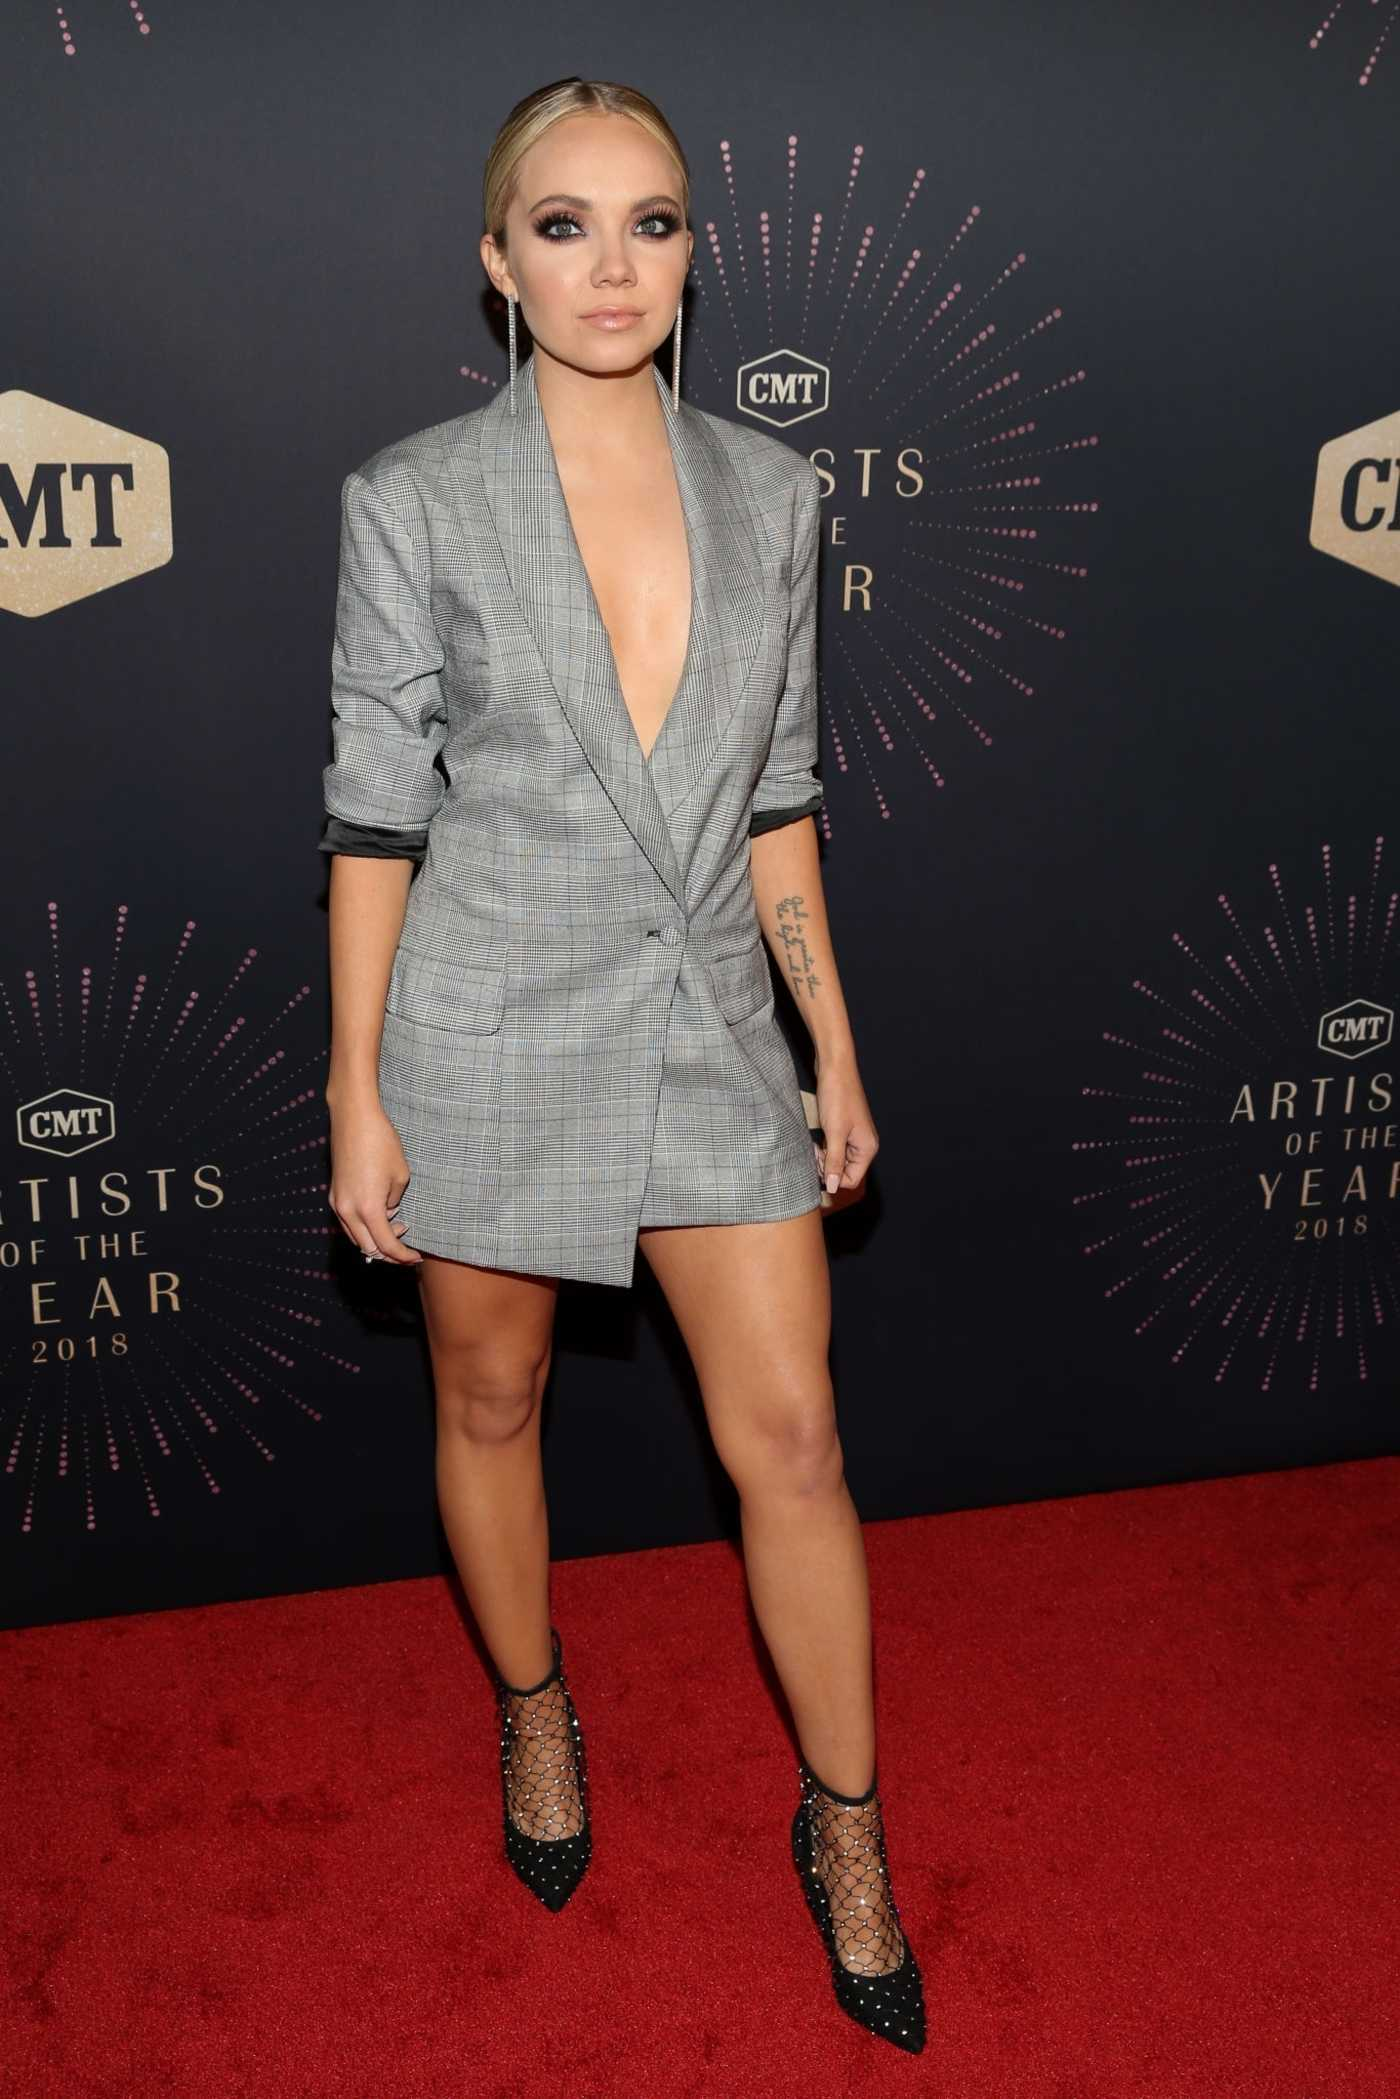 Danielle Bradbery at 2018 CMT Artists of The Year at Schermerhorn Symphony Center in Nashville 10/17/2018